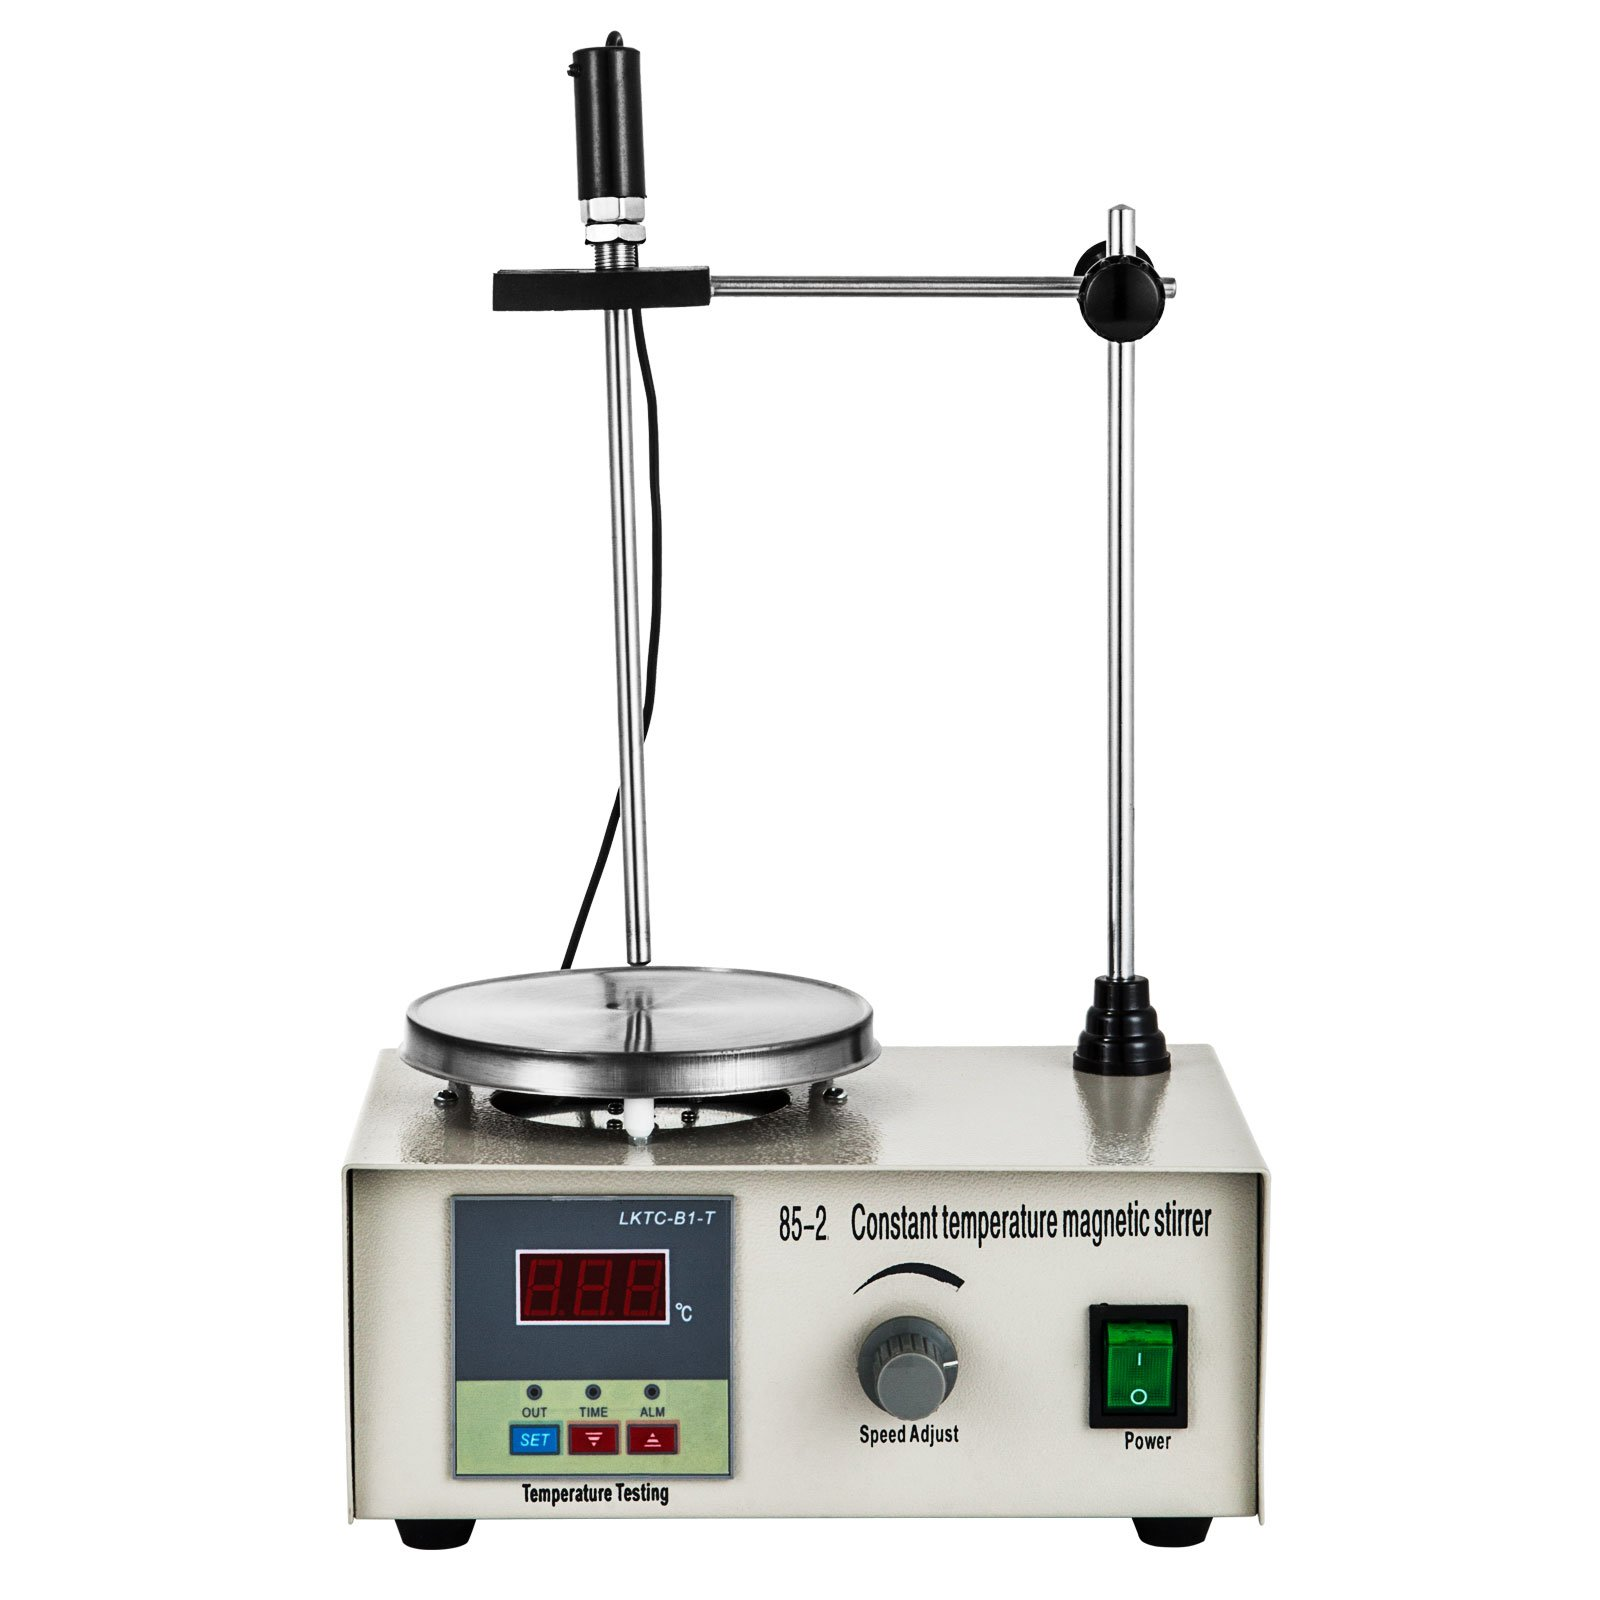 Mophorn Magnetic Stirrer Hotplate 110V Magnetic Stirring Mixer 85-2 Hotplate Magnetic Heating Plate 1000ML